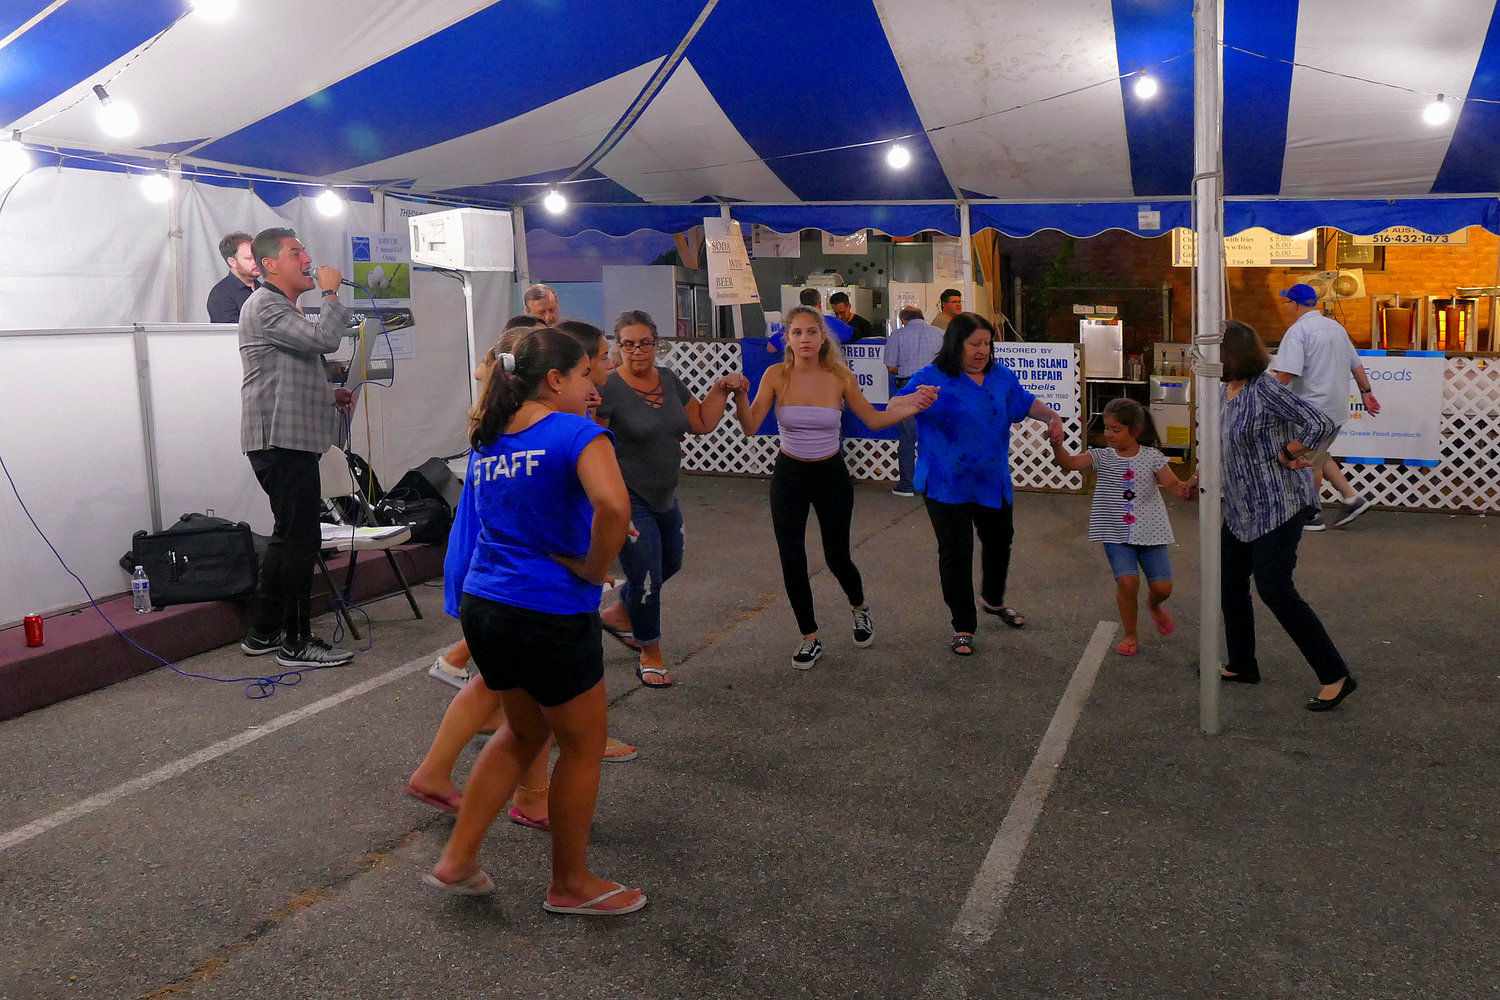 Staff members and festival guests felt the urge to sing and dance under the colorful tent.